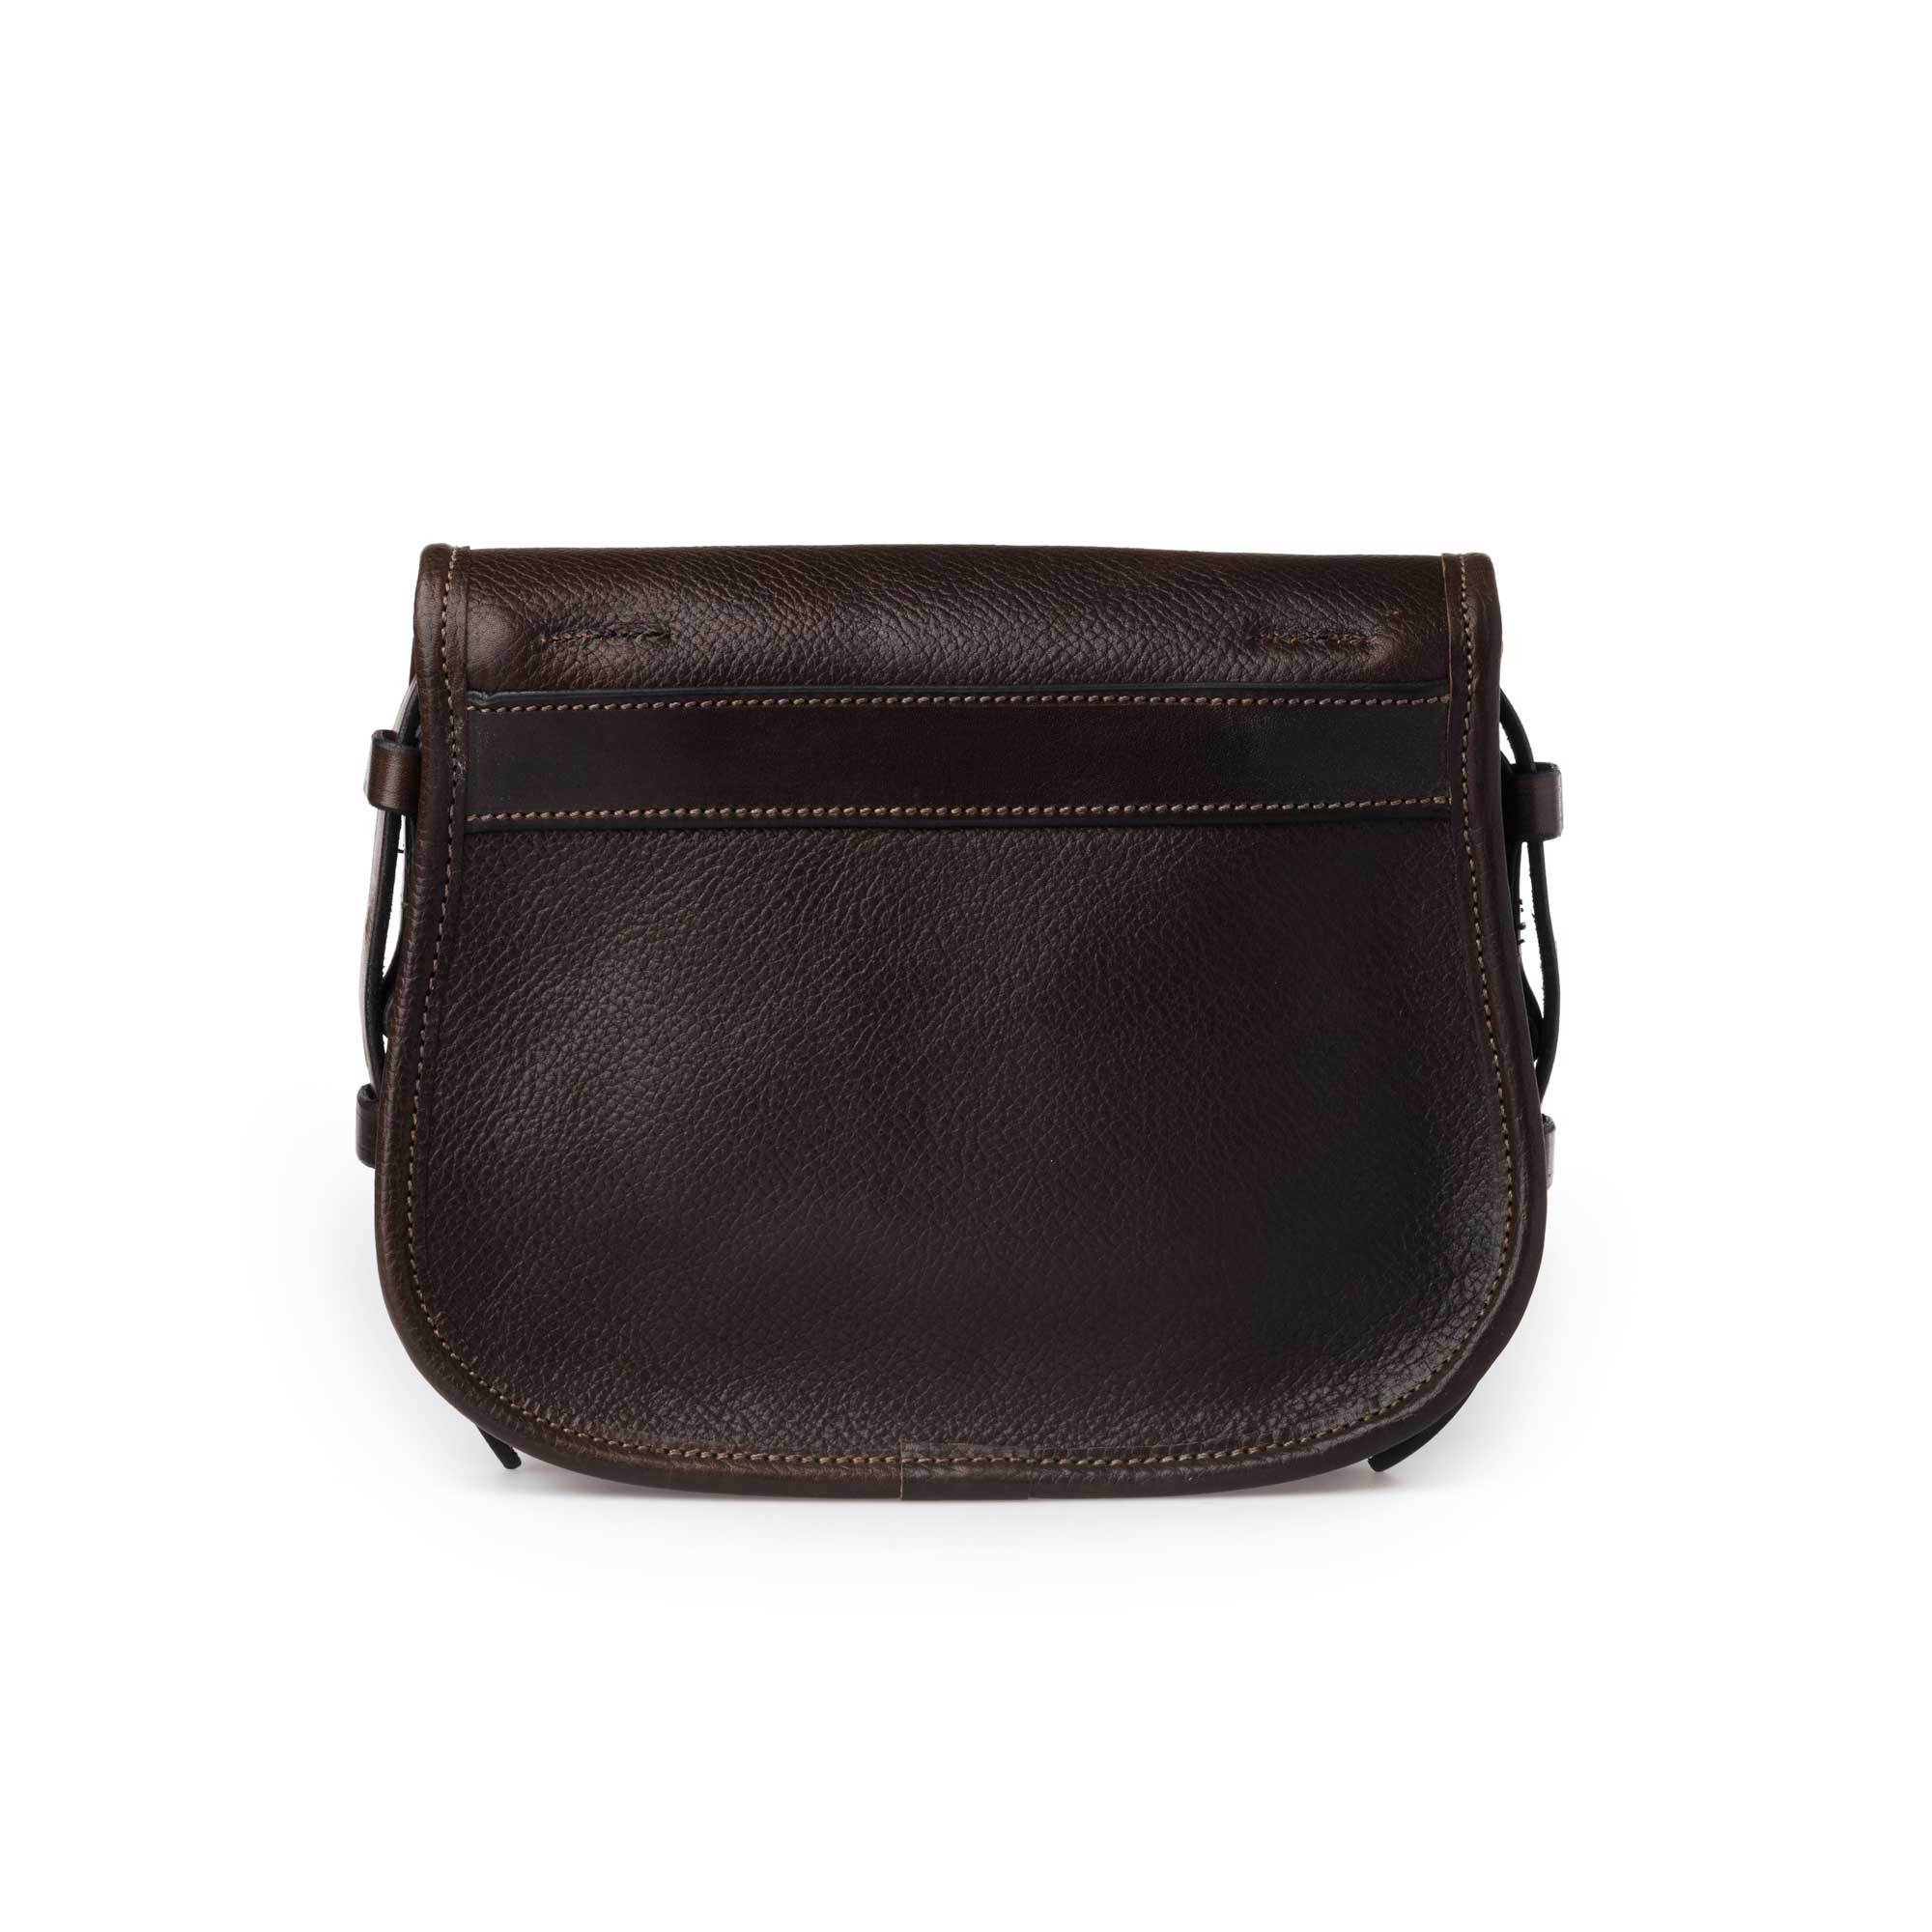 Perfecta  Cartridge Bag - Dark Tan.